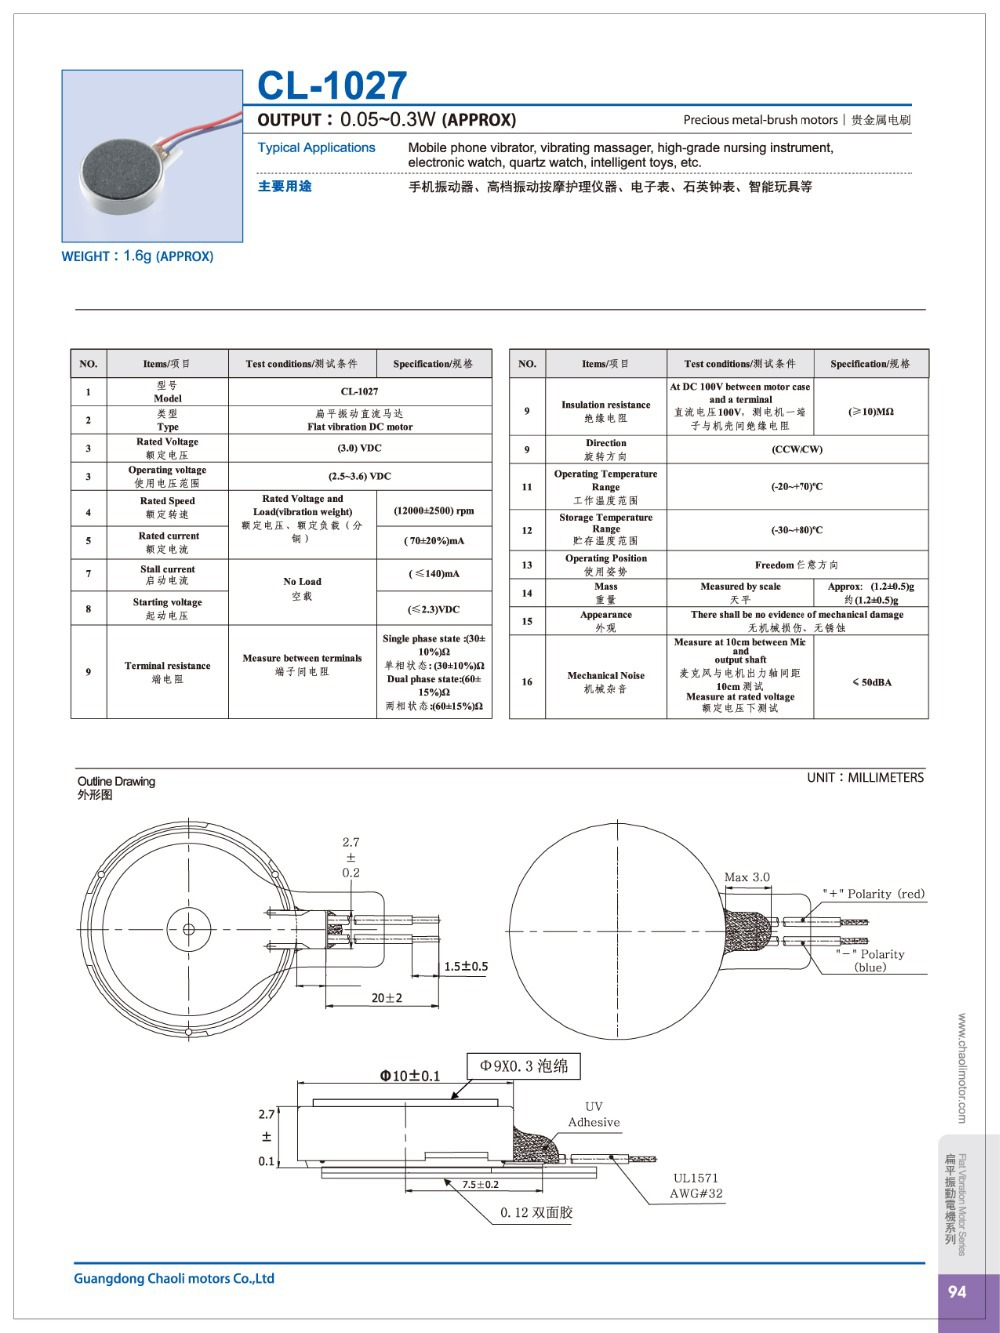 reasonably structured bldc motor CL-1027 for Personal care products